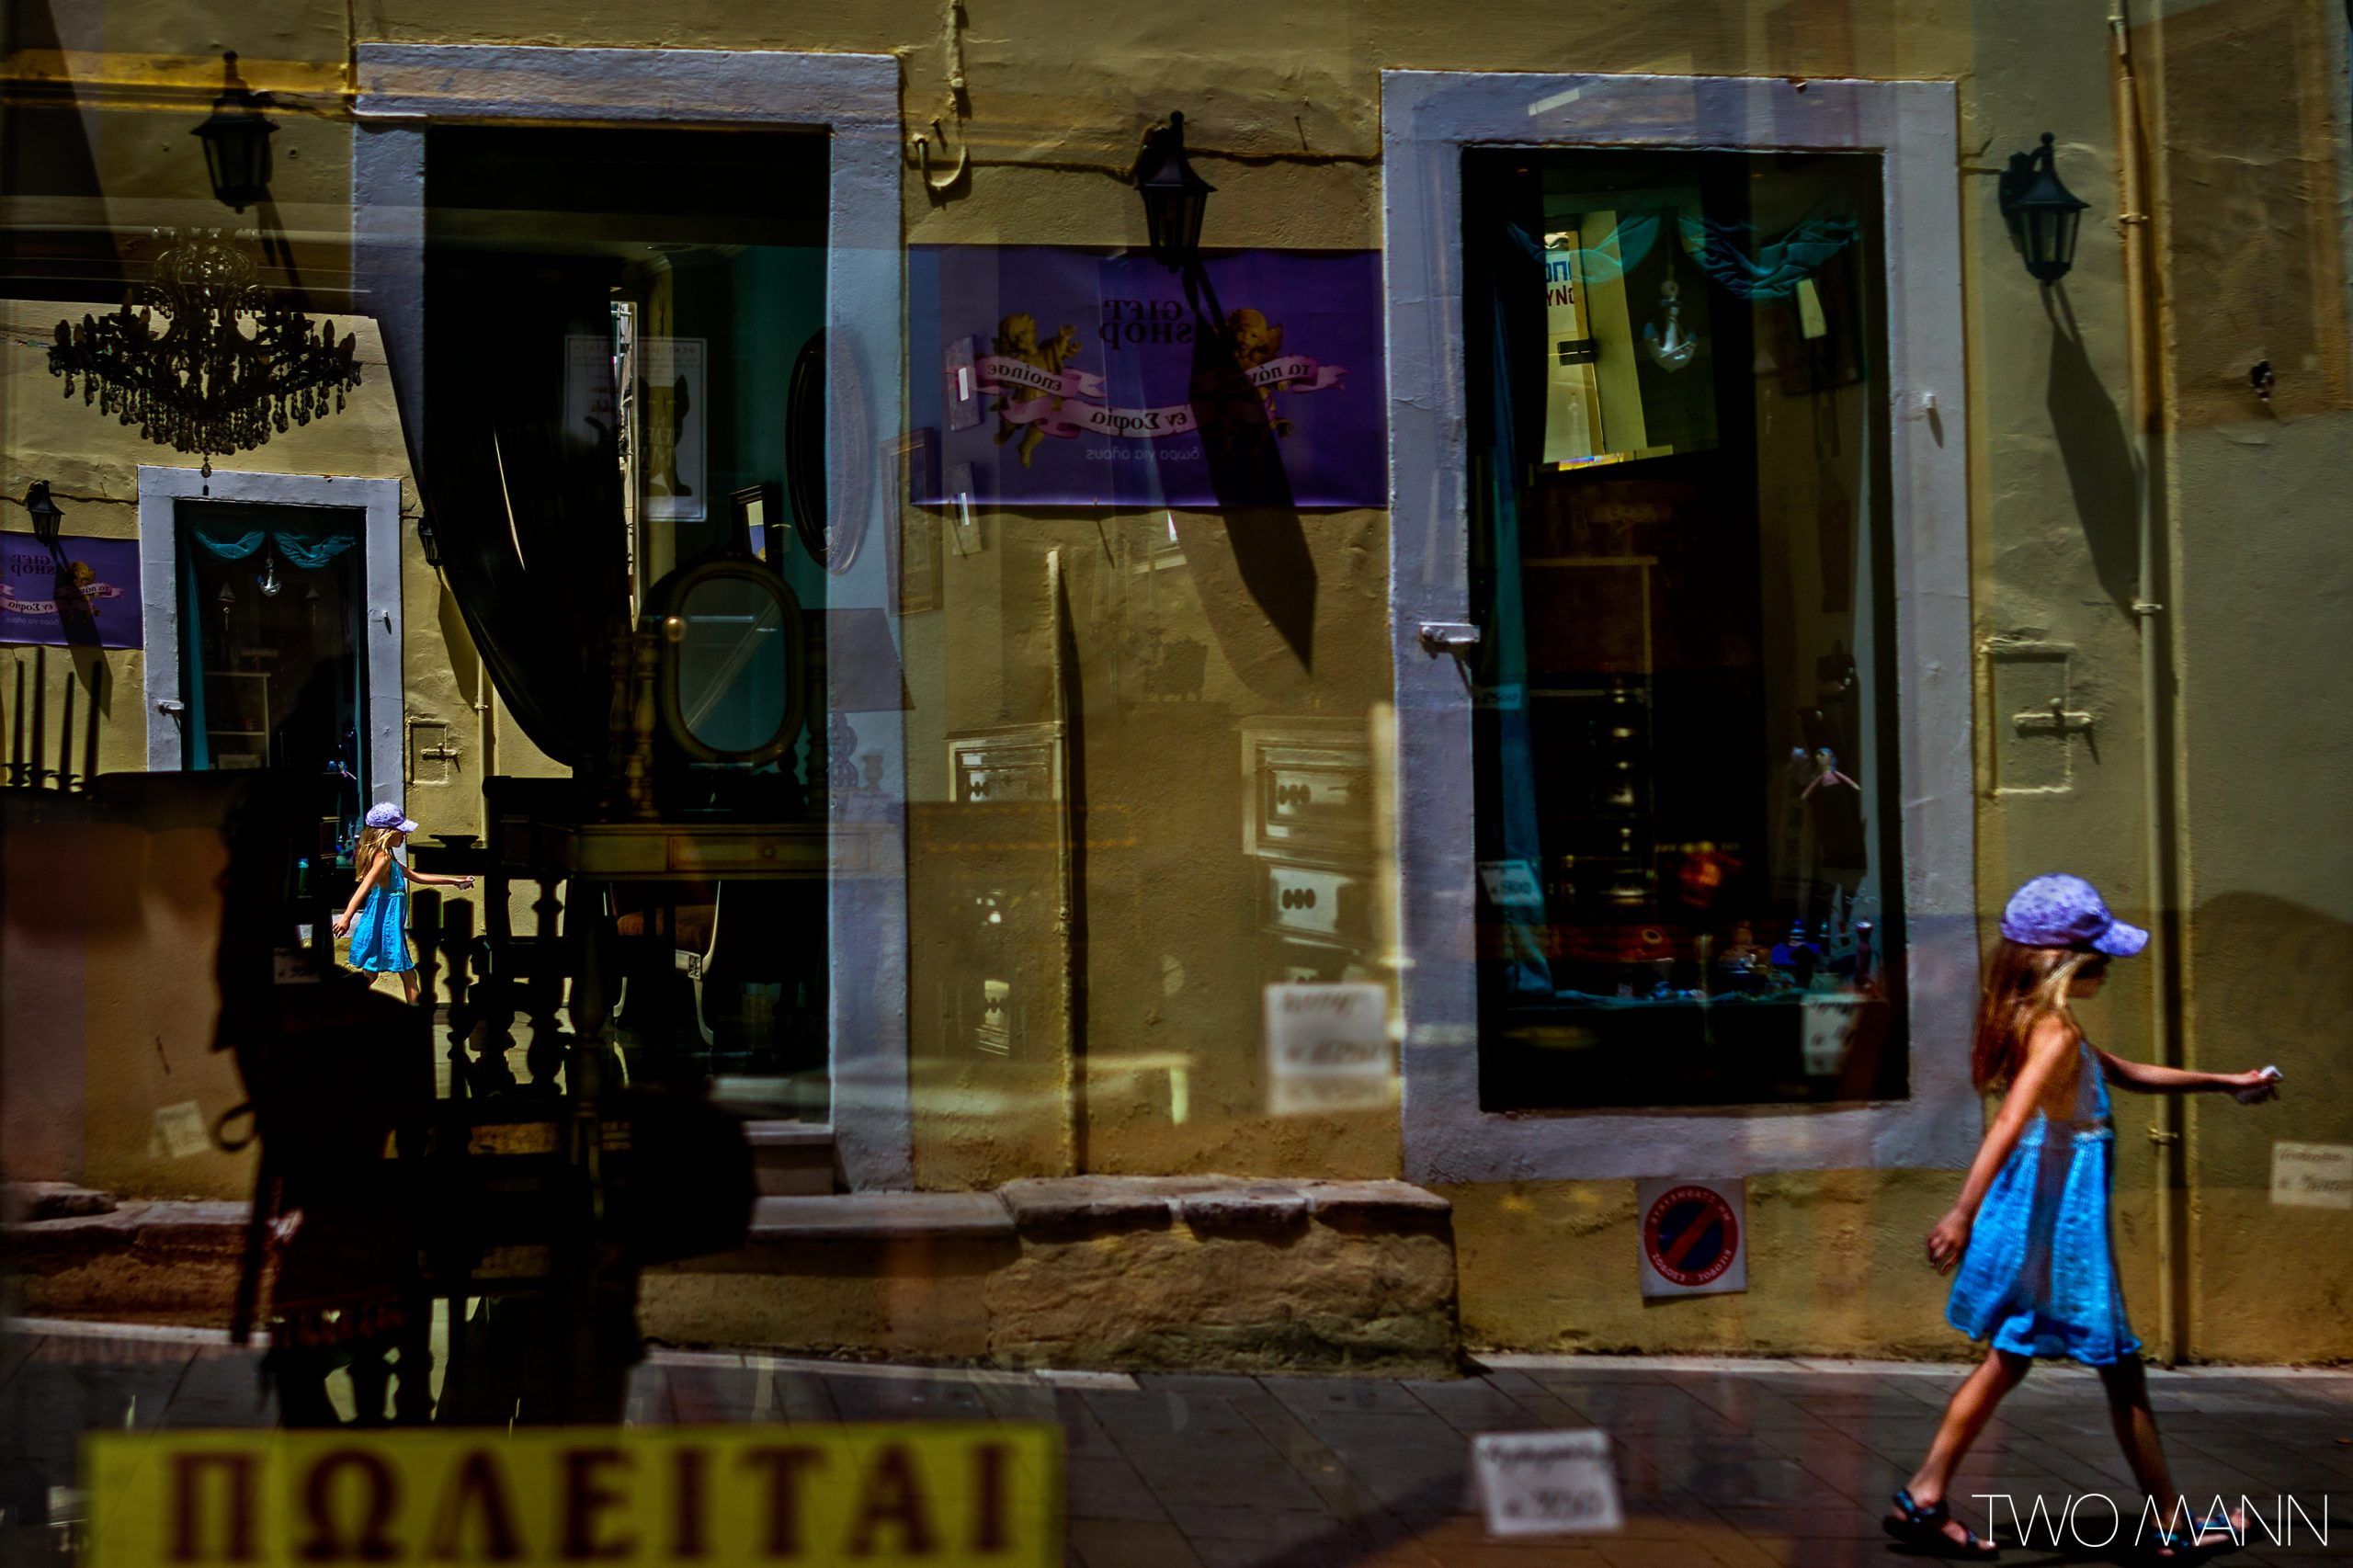 Reflection of young girl walking down street on store window